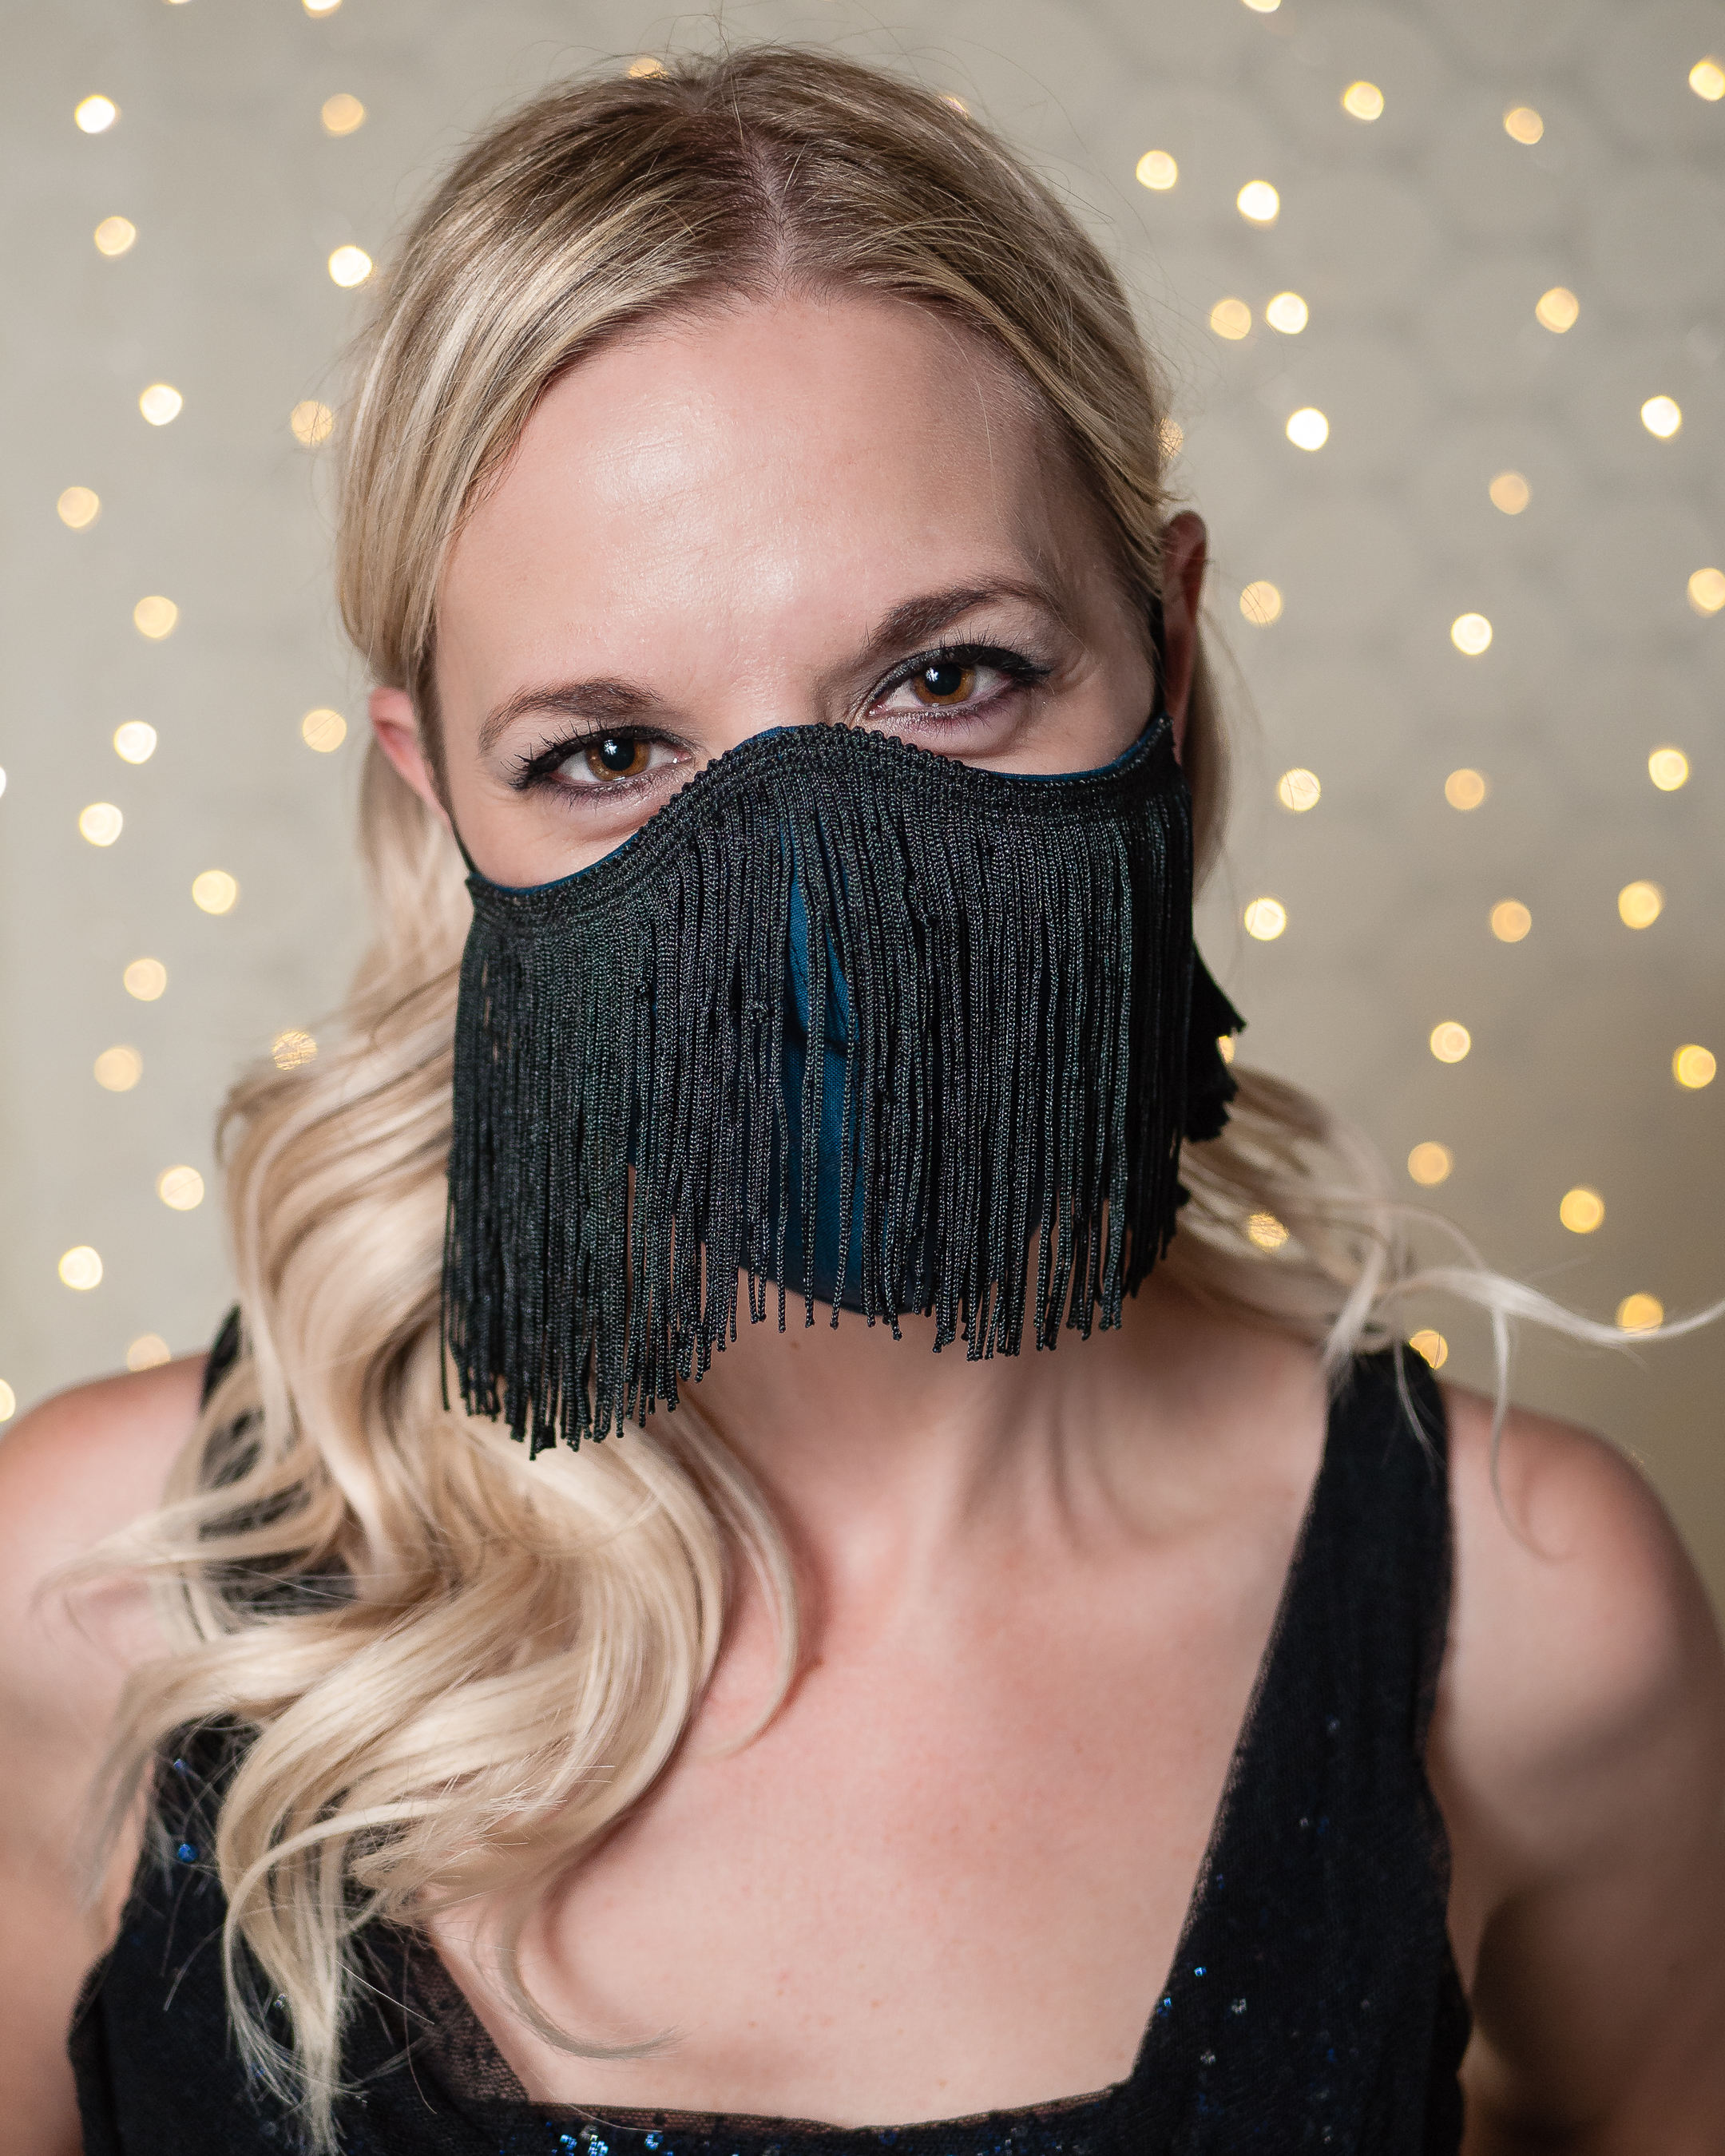 Amber modeling the new Fringe face mask. (Image: Ugly Yellow House)